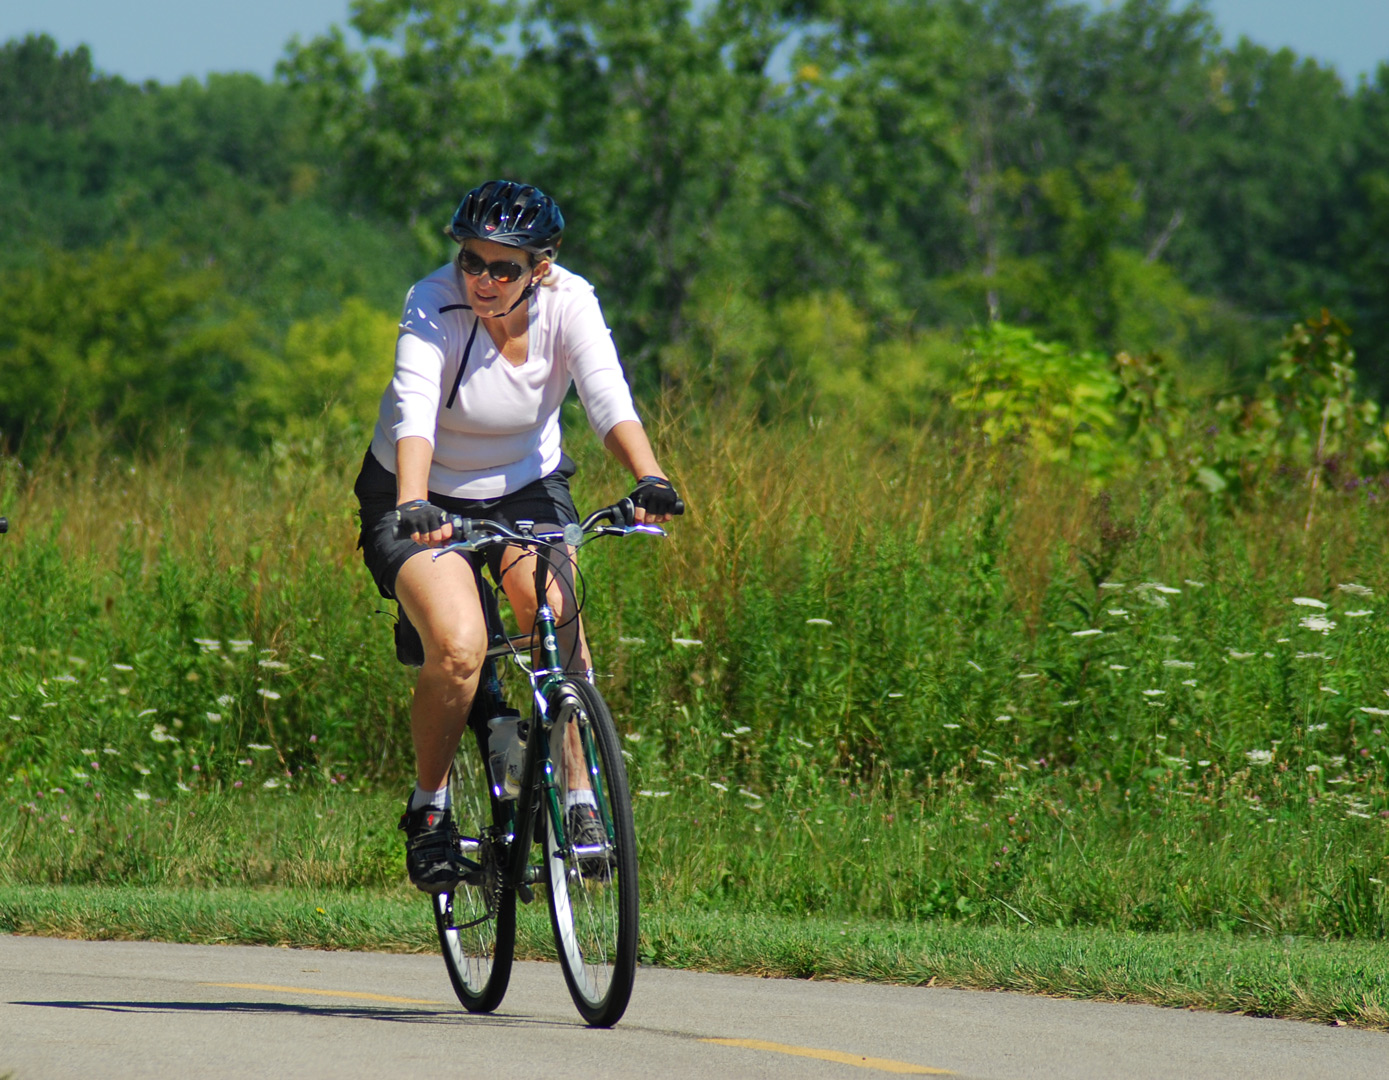 Biker on the Greenway Trail. Photo by Bill McCracken.